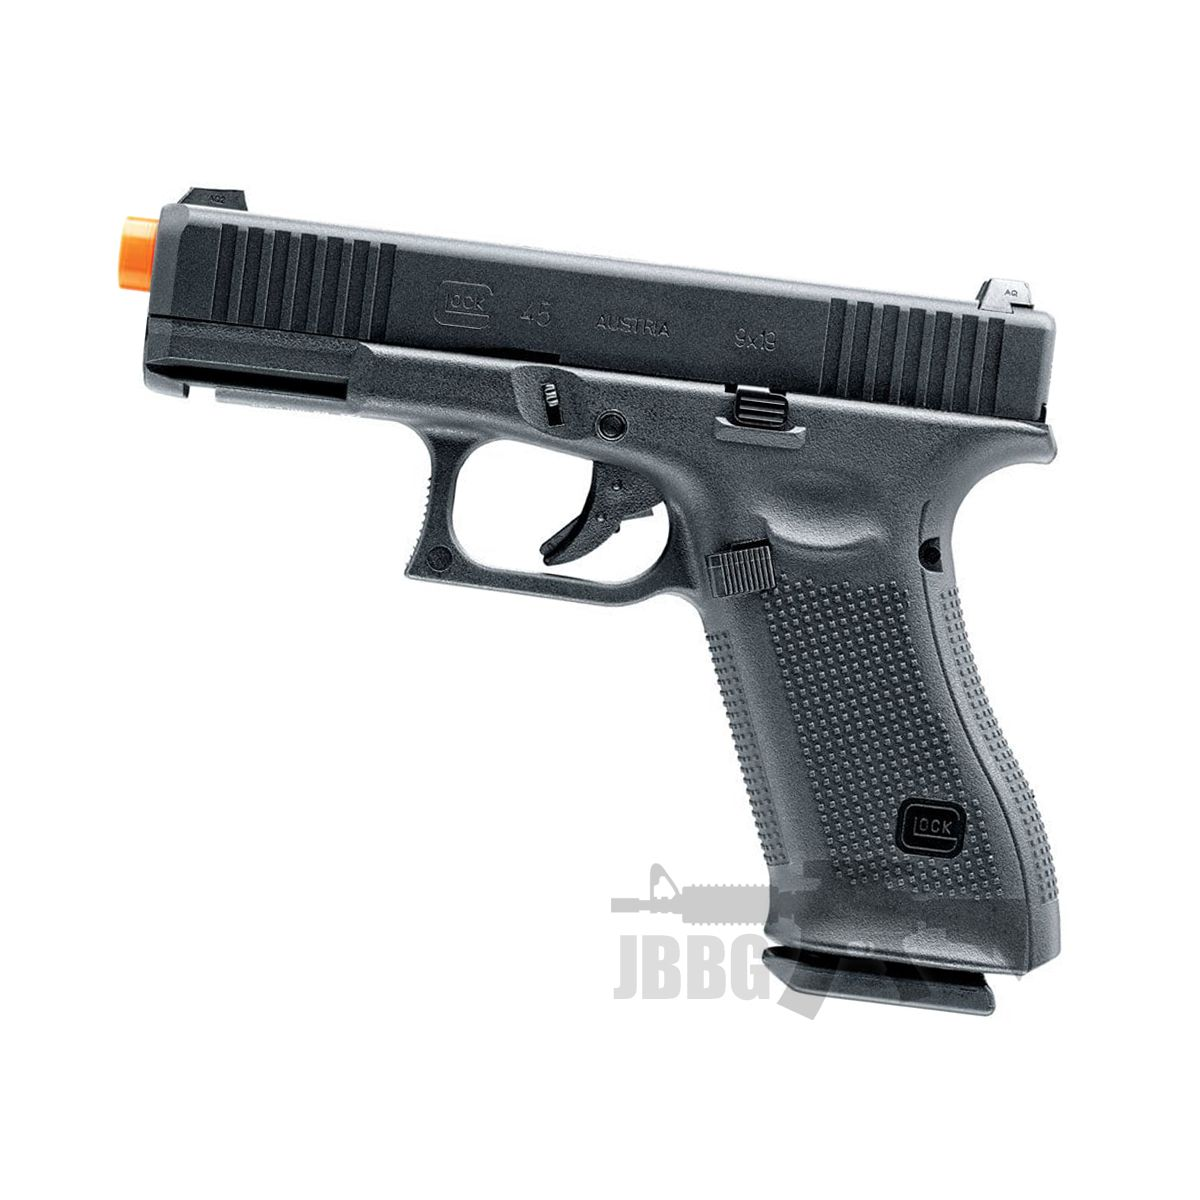 Glock G45 Airsoft Pistol with Gas Blowback